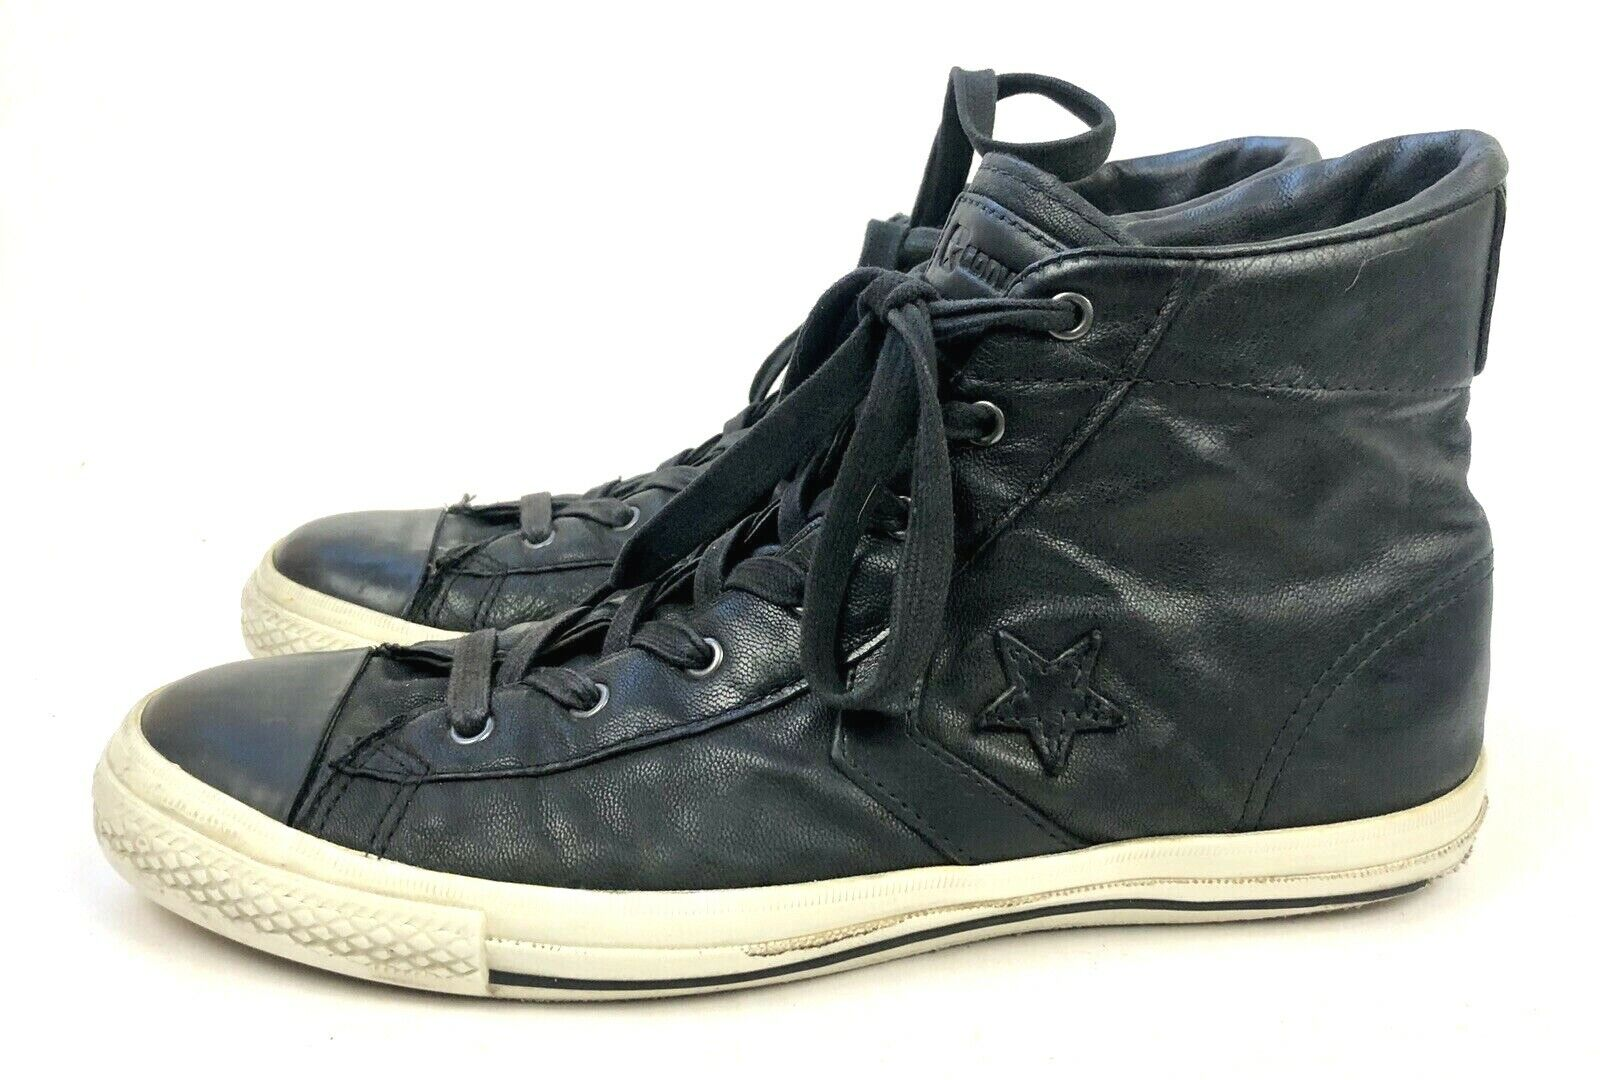 CONVERSE John Varvatos Black Leather Lace Up All Star High Top Sneaker Men's 9.5